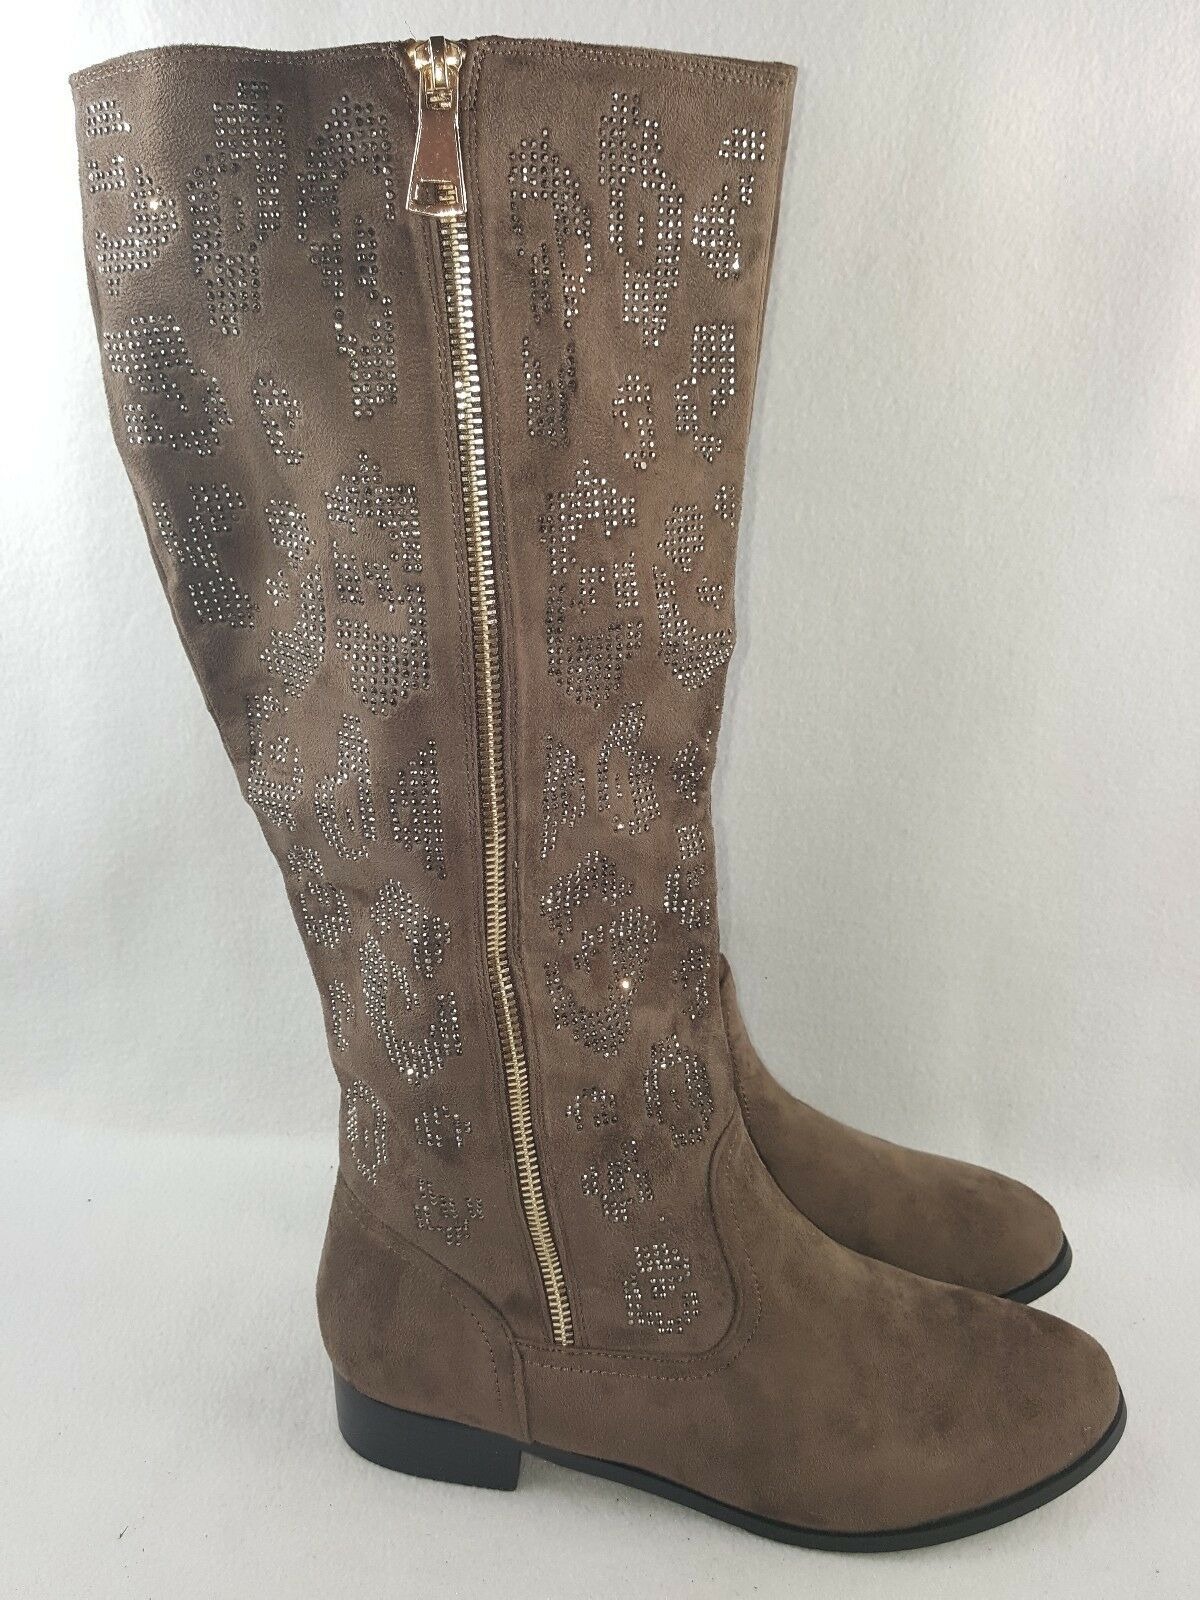 Italina By Summer Rio Women's Knee High Fashion Boots, Taupe Size 10